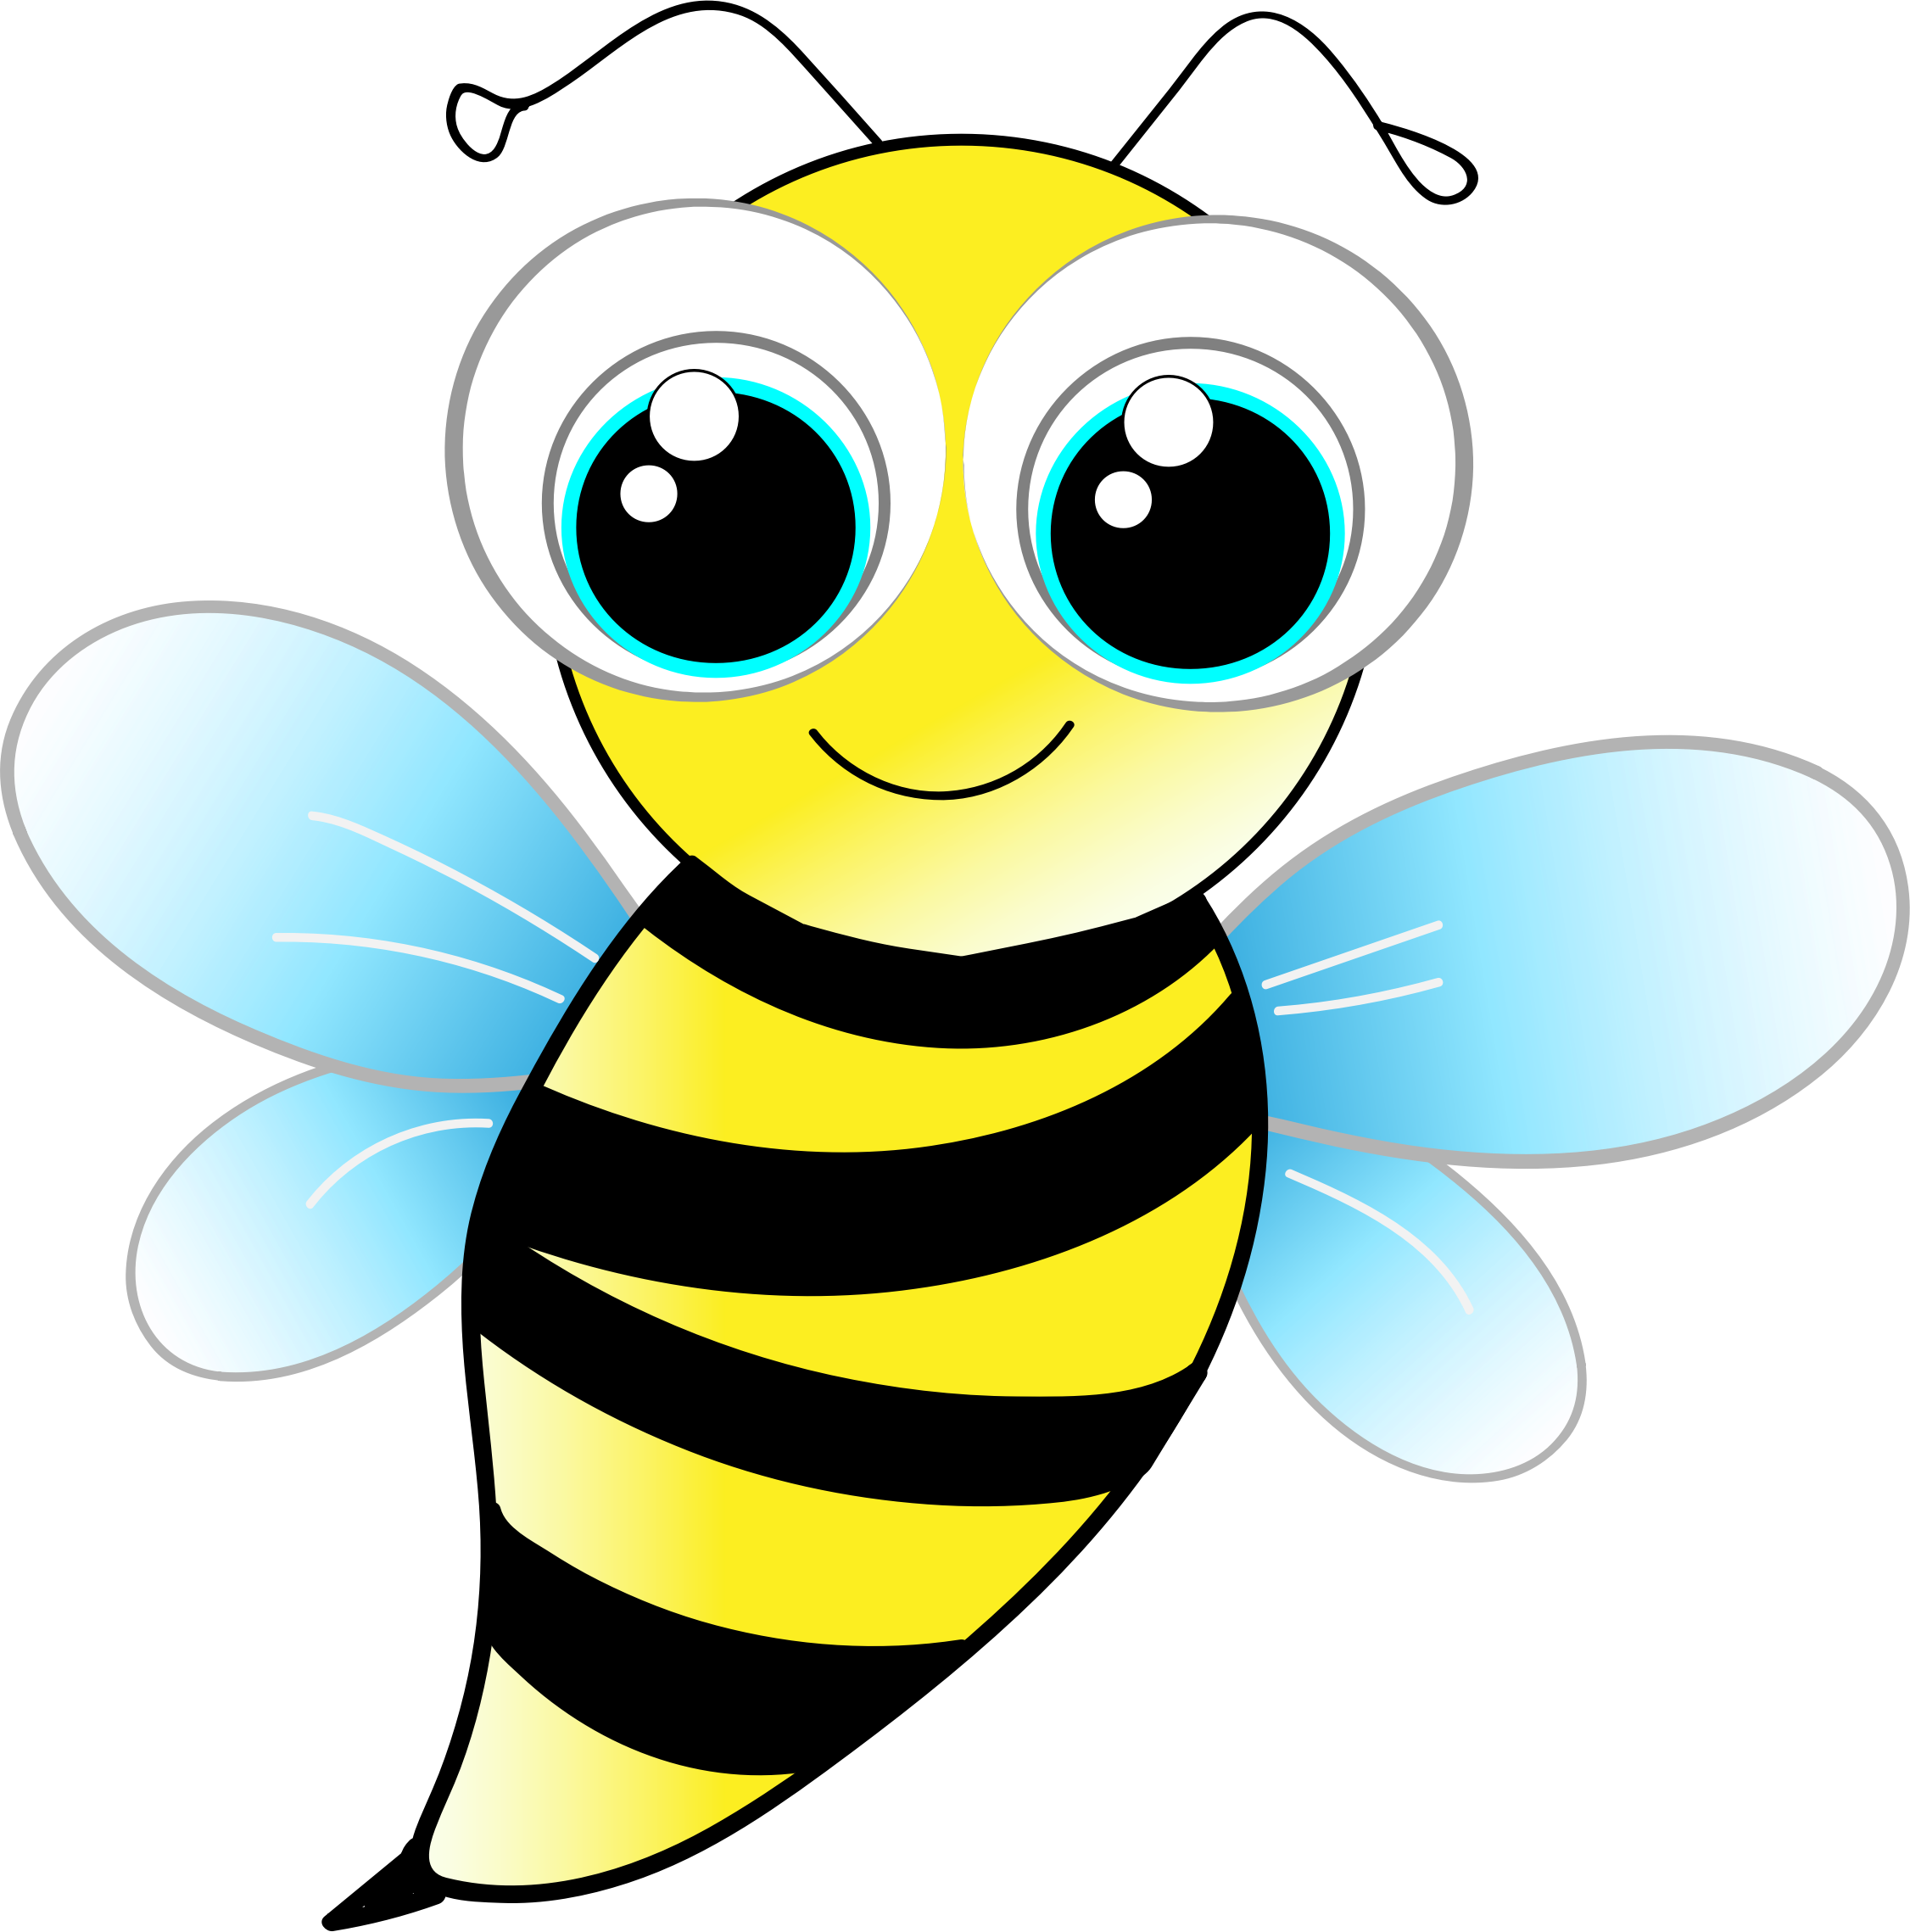 Beehive in tree clipart transparent stock Friendly Bee by @GDJ, From Pixabay., on @openclipart | The Bees ... transparent stock